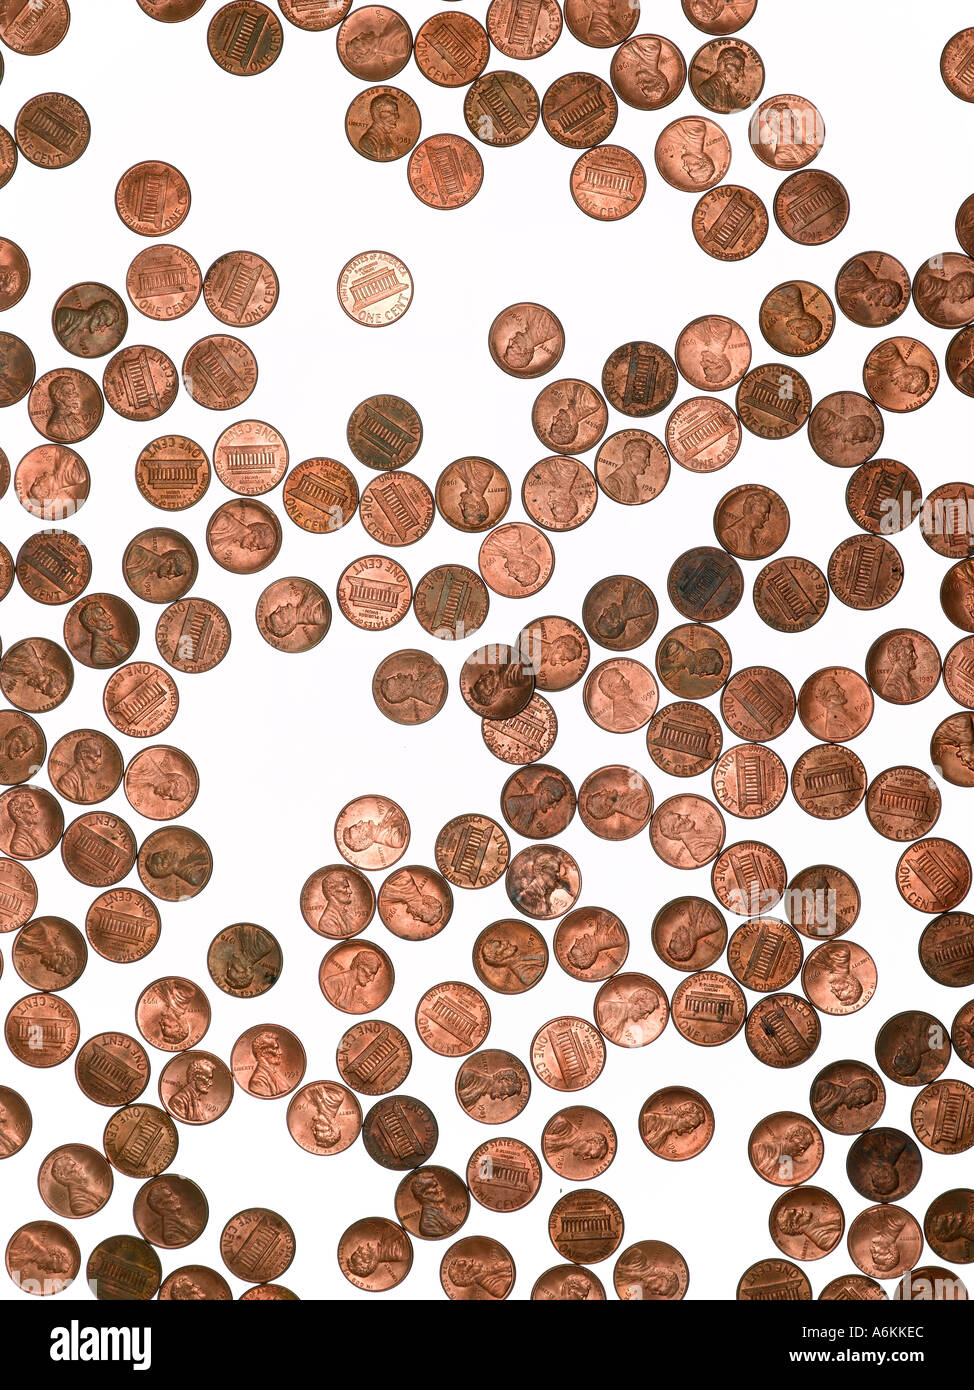 Composition of random order of 1cent coins - Stock Image